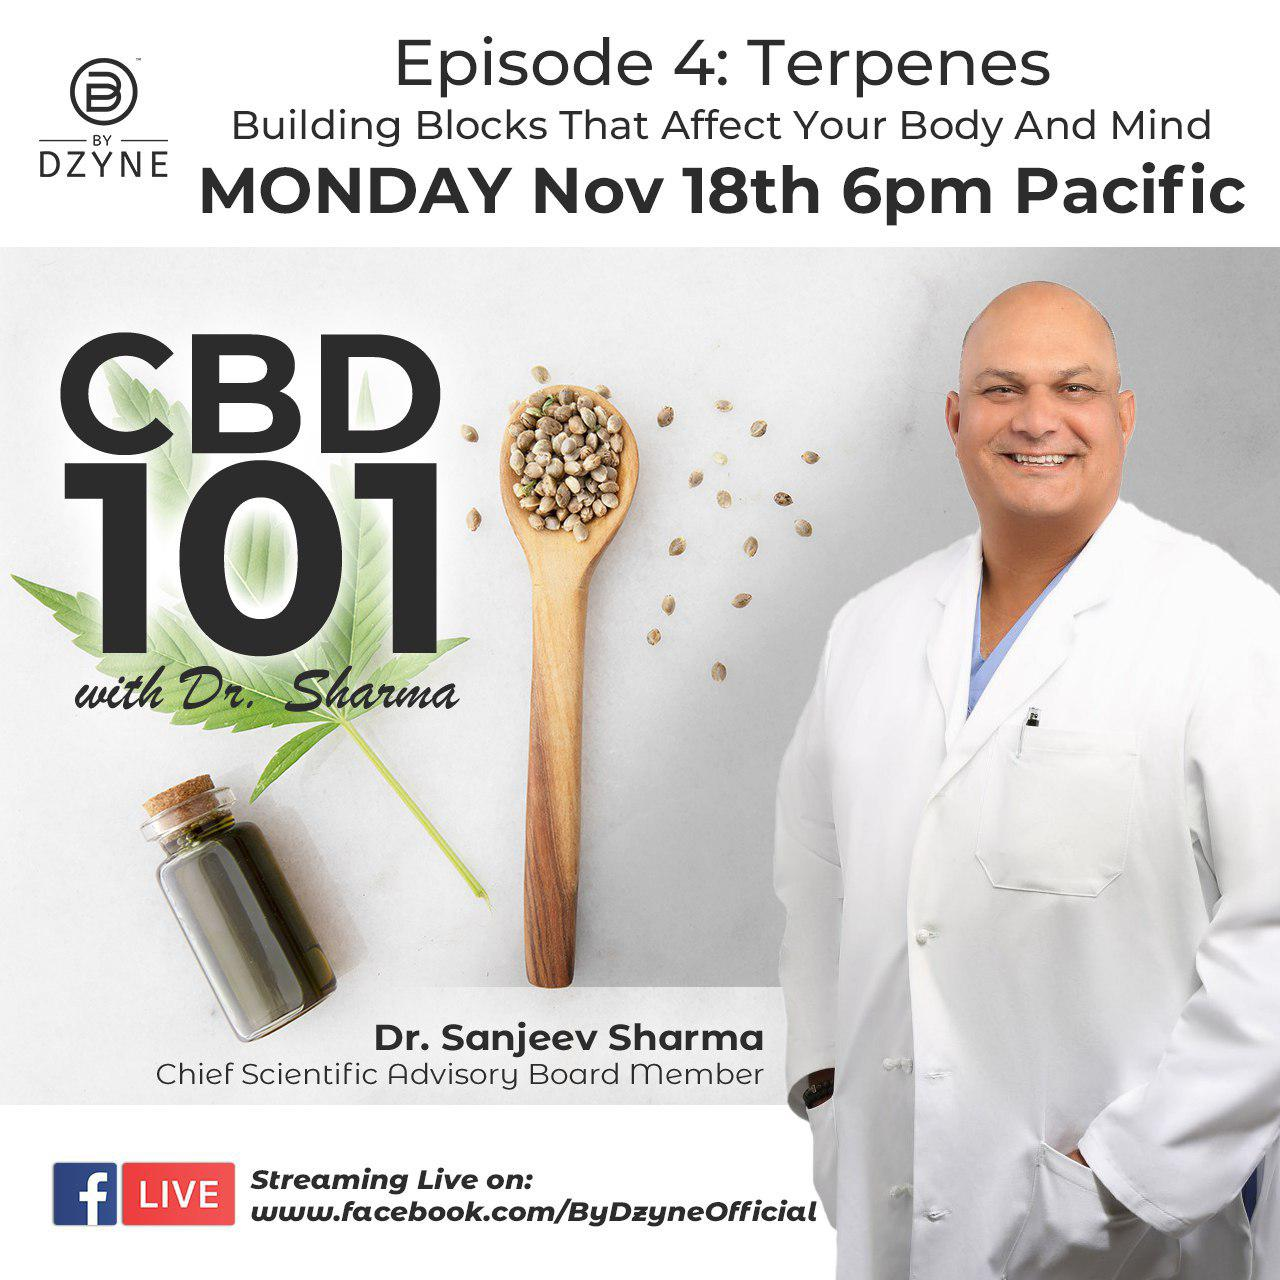 RECAP: Episode 4 – CBD 101 Terpenes: Building Blocks That Affect Your Body And Mind